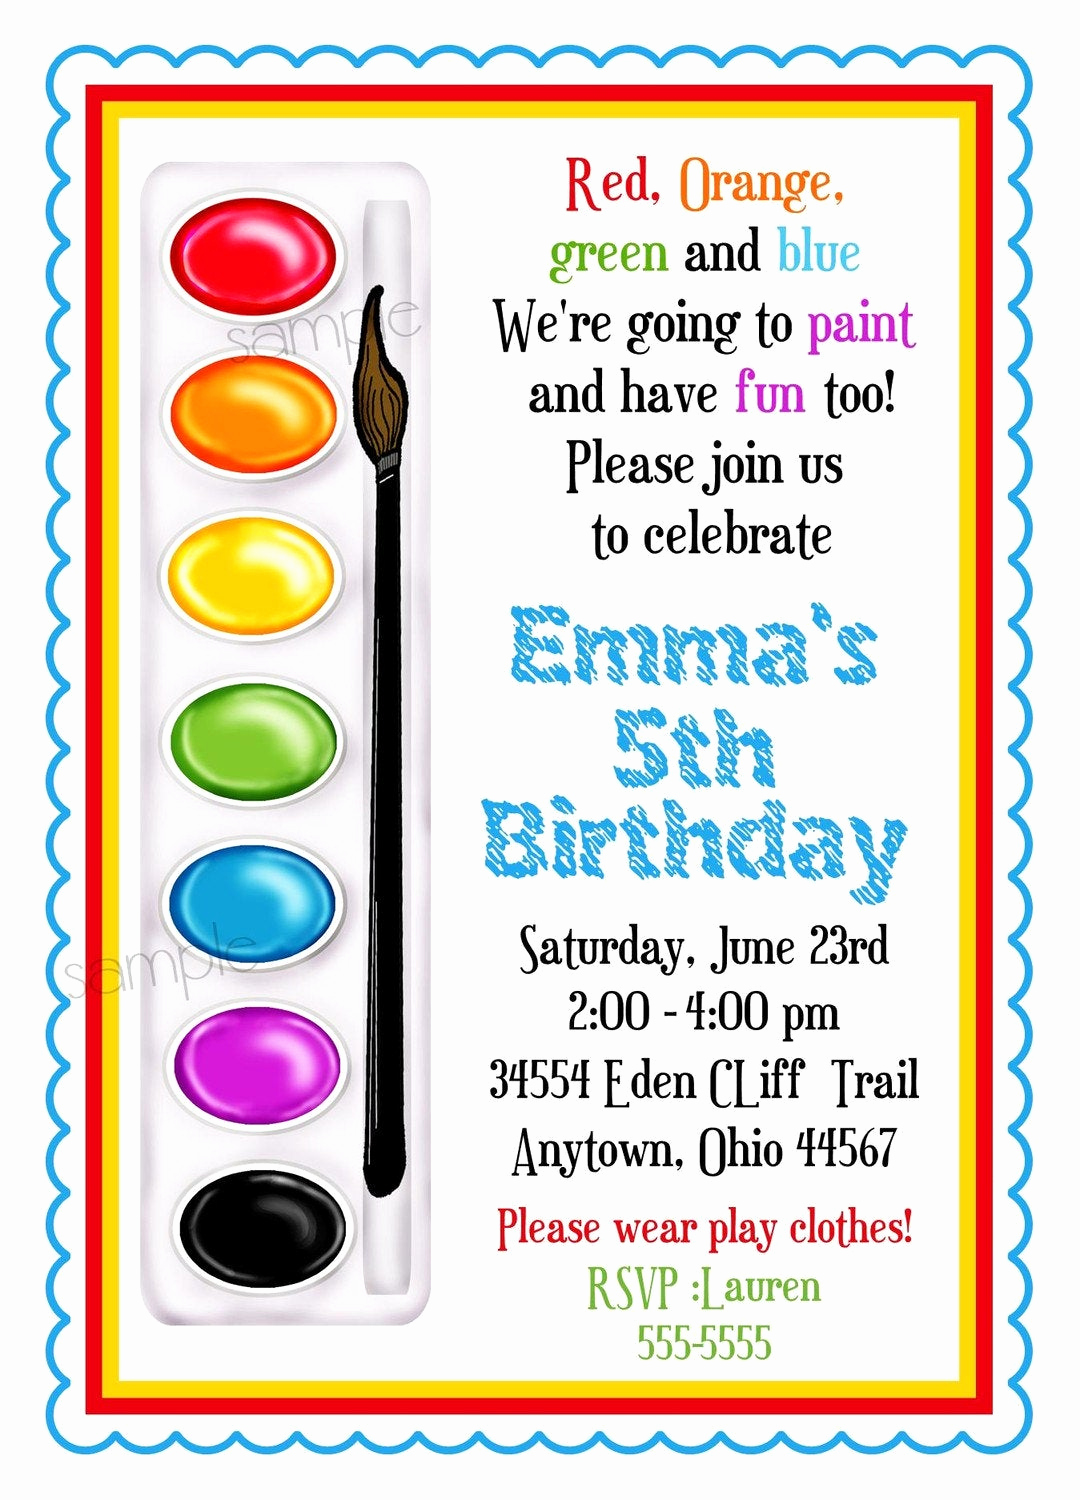 Paint Party Invitation Wording Luxury Art Invitations Painting Party Birthday Party Paint Box